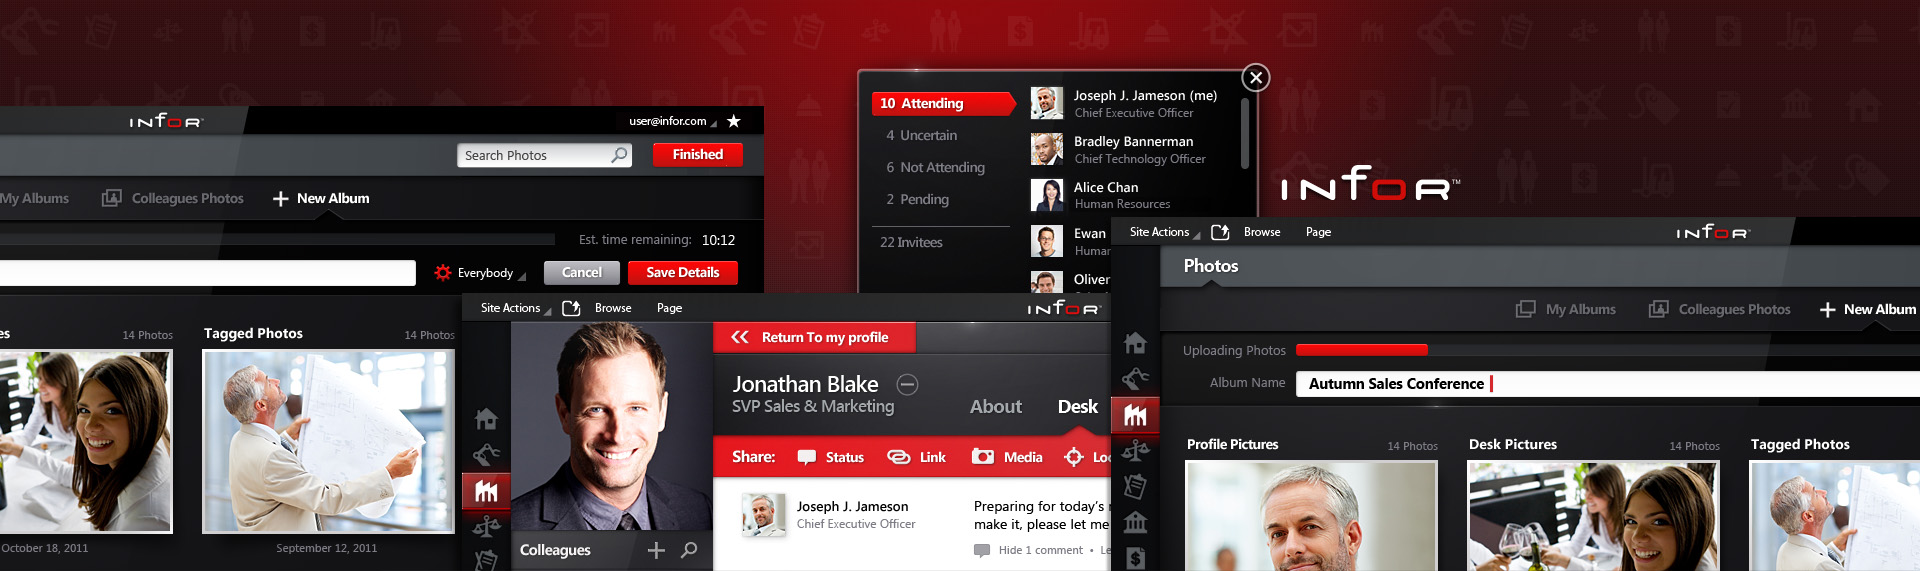 Infor10 Workspace  Browser Application UX & UI Design  The Skins Factory developed the comprehensive UI + UX for Infor's enterprised-based social application which includes: Profiles, Messaging, Photo Management & Library, Events, Alerts, news feeds & more. Developed to work on both desktop clients and touchscreen devices. The look and feel has a hybrid aesthetic - with its flat, visual design fused with The Skins Factory's trademark style of adding tactile, design elements throughout the UI. 1 of 6 projects Infor tasked The Skins Factory with.